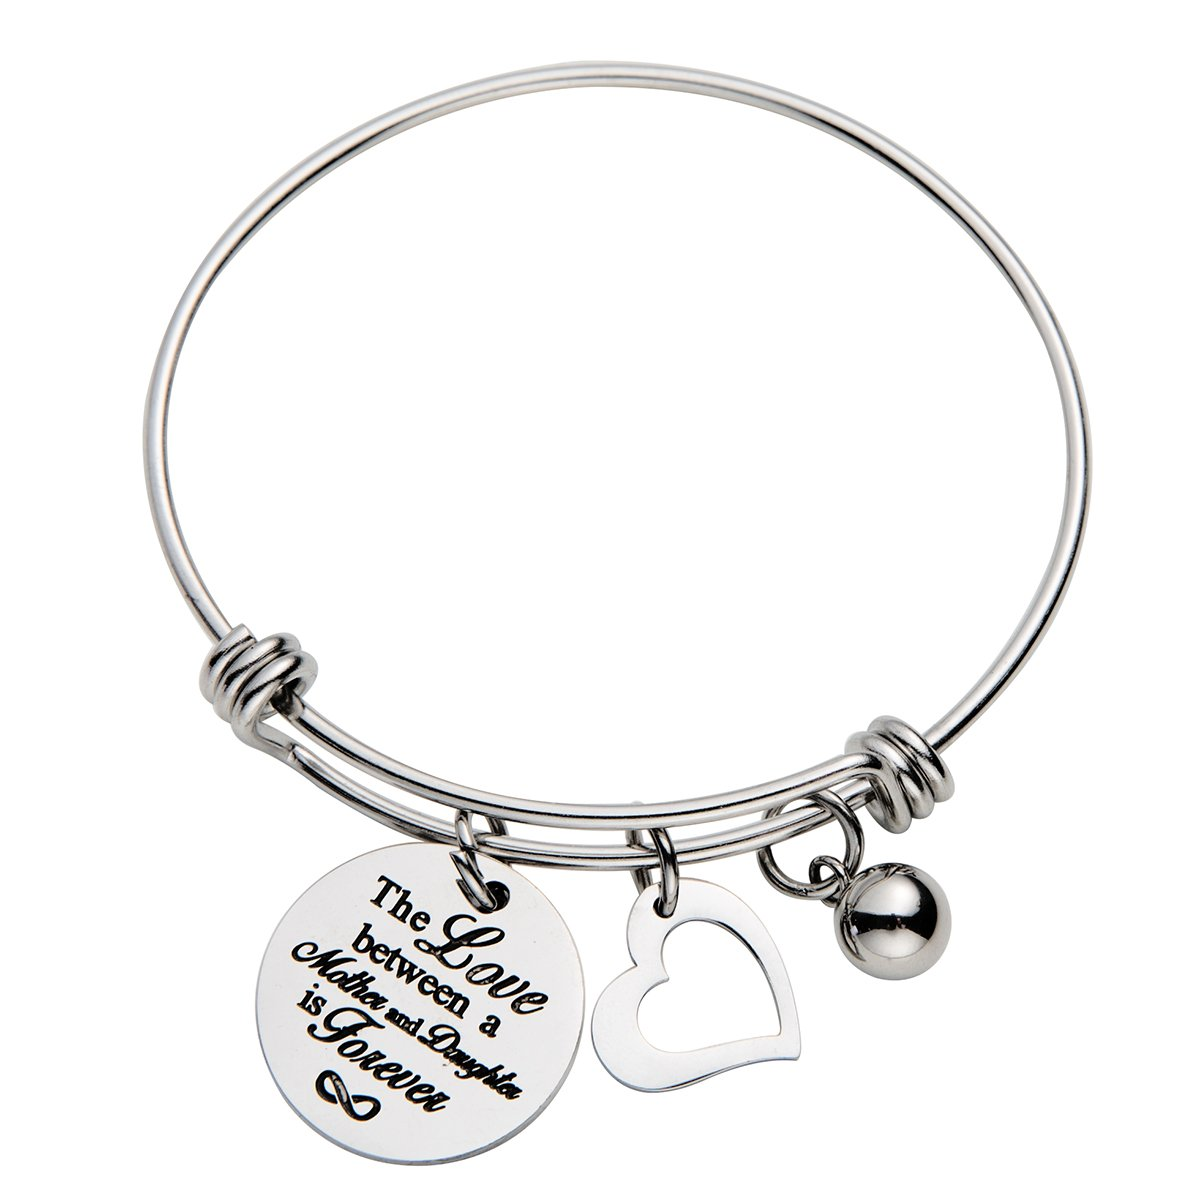 omodofo Mother's Day Gift The Love Between A Mother and Daughter is Forever Inspirational Messaged Adjustable Cuff Bracelet